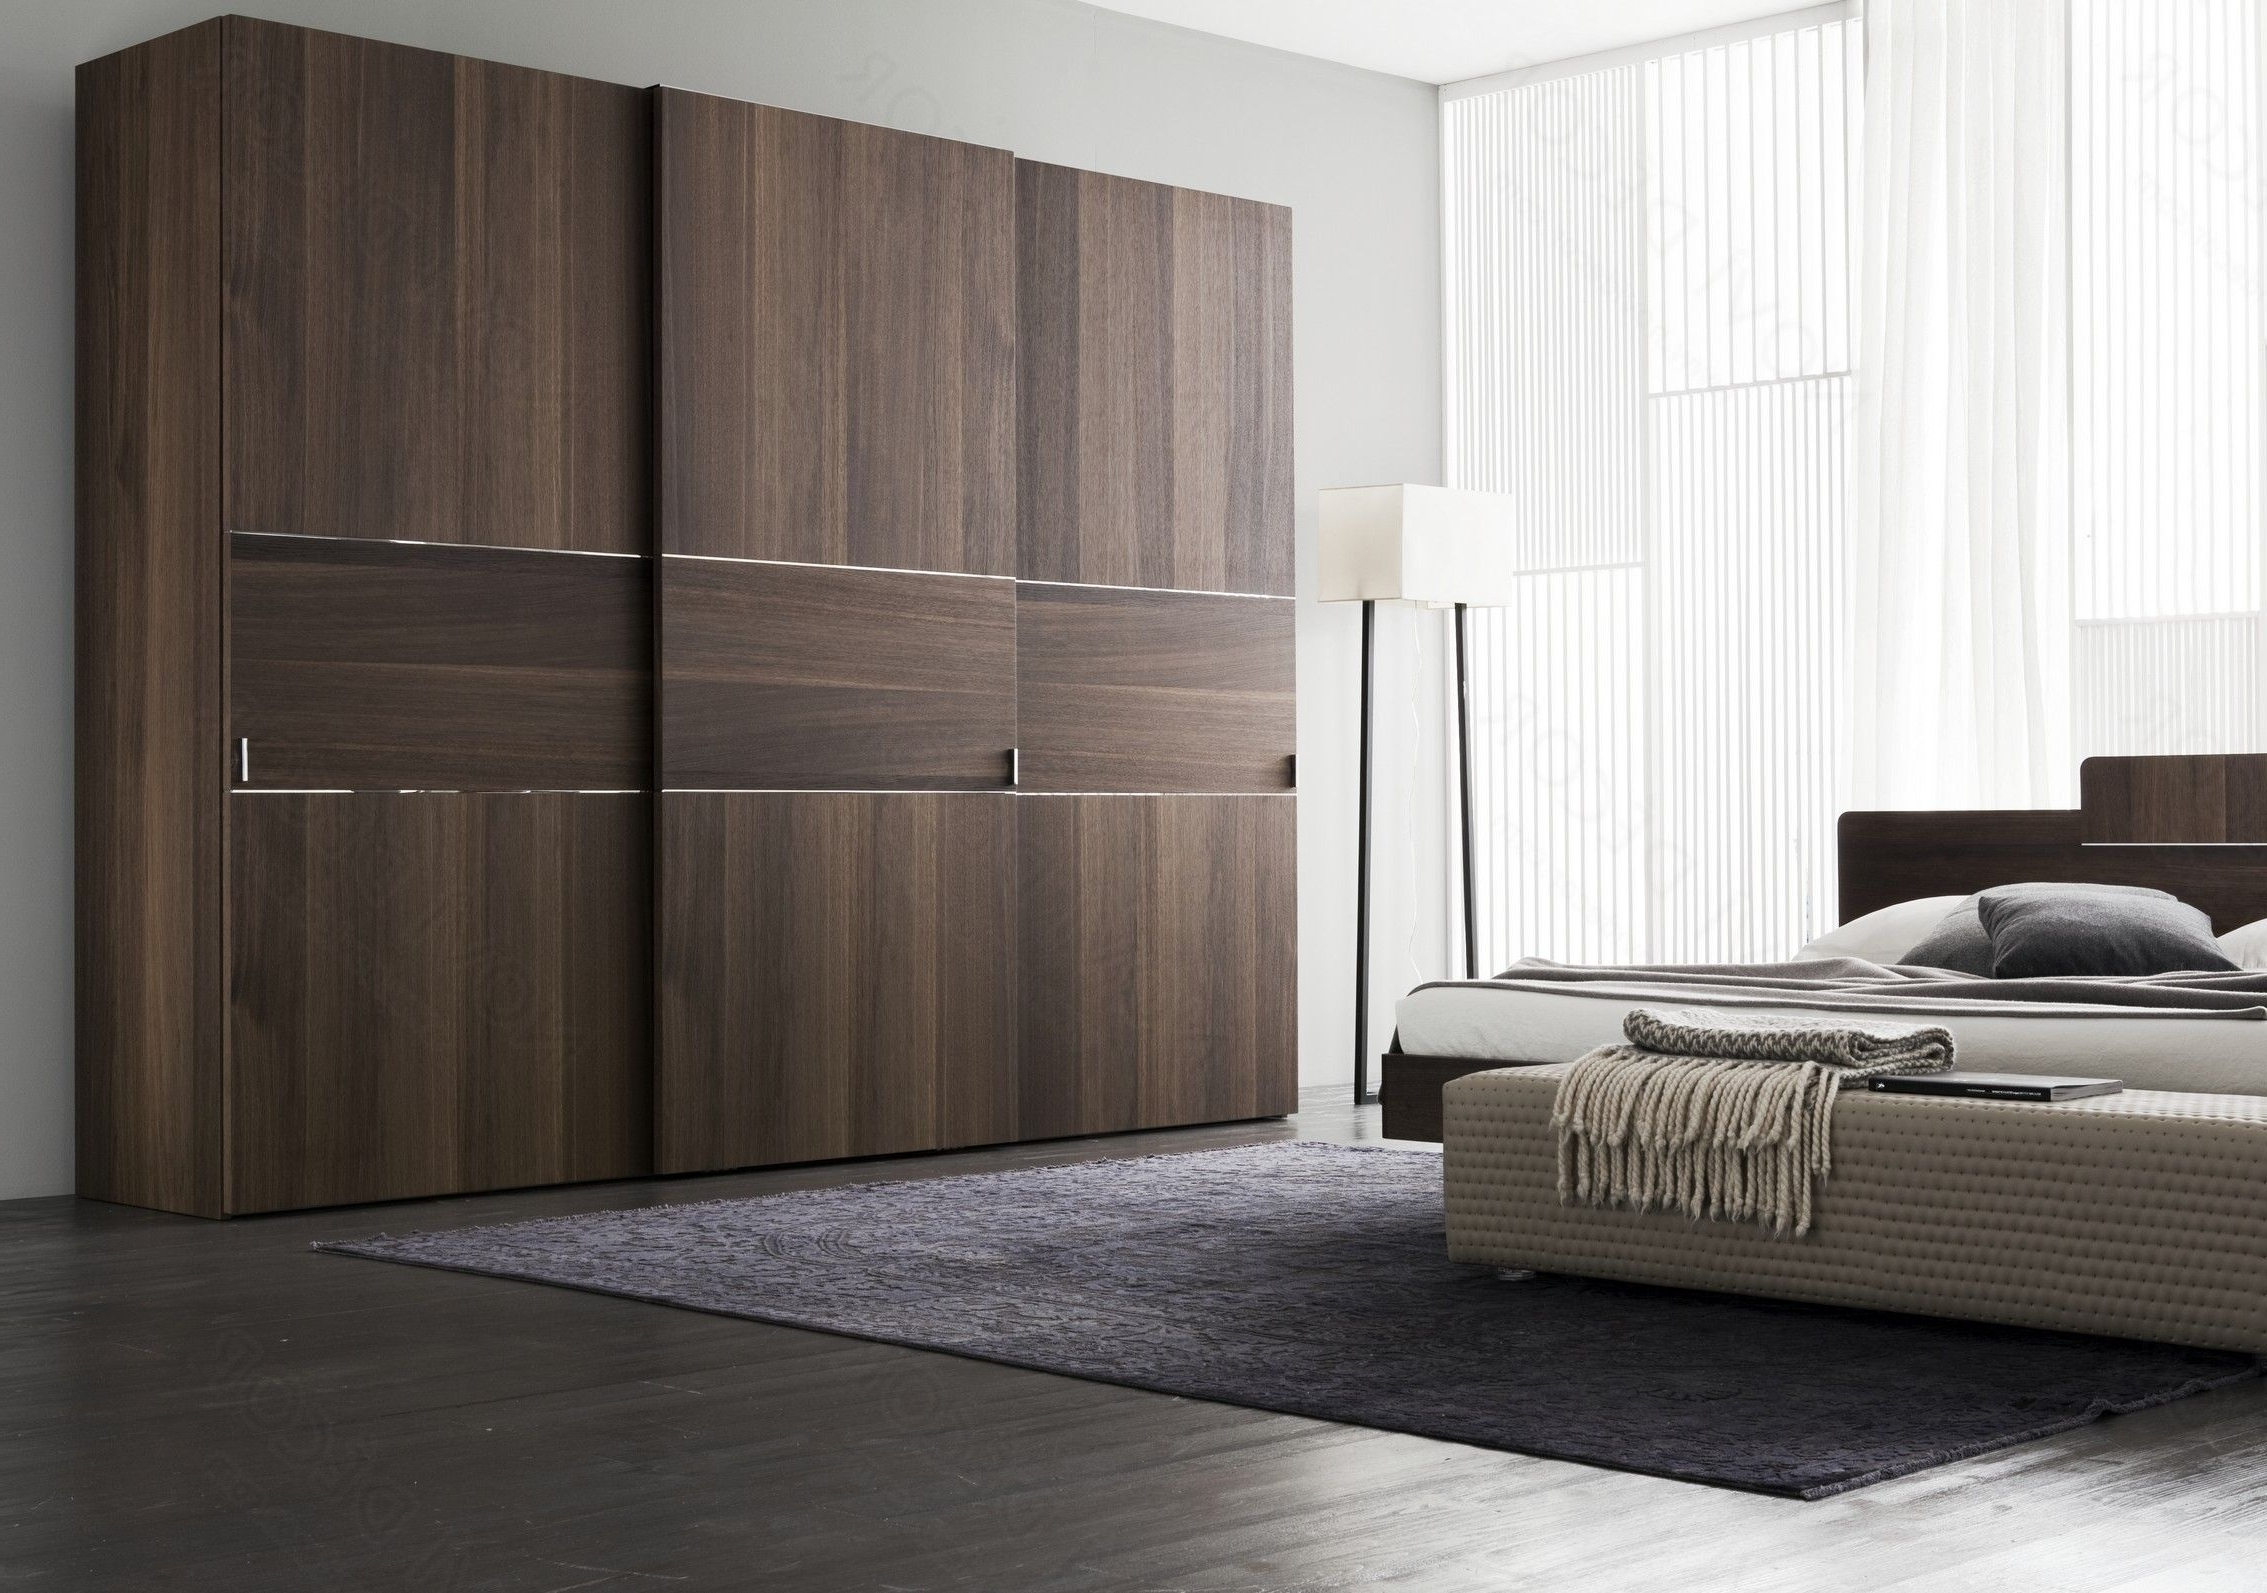 Sliding Wardrobe Doors As Nice Color Combination Furniture For Within Fashionable Chest Of Drawers Wardrobes Combination (View 9 of 15)